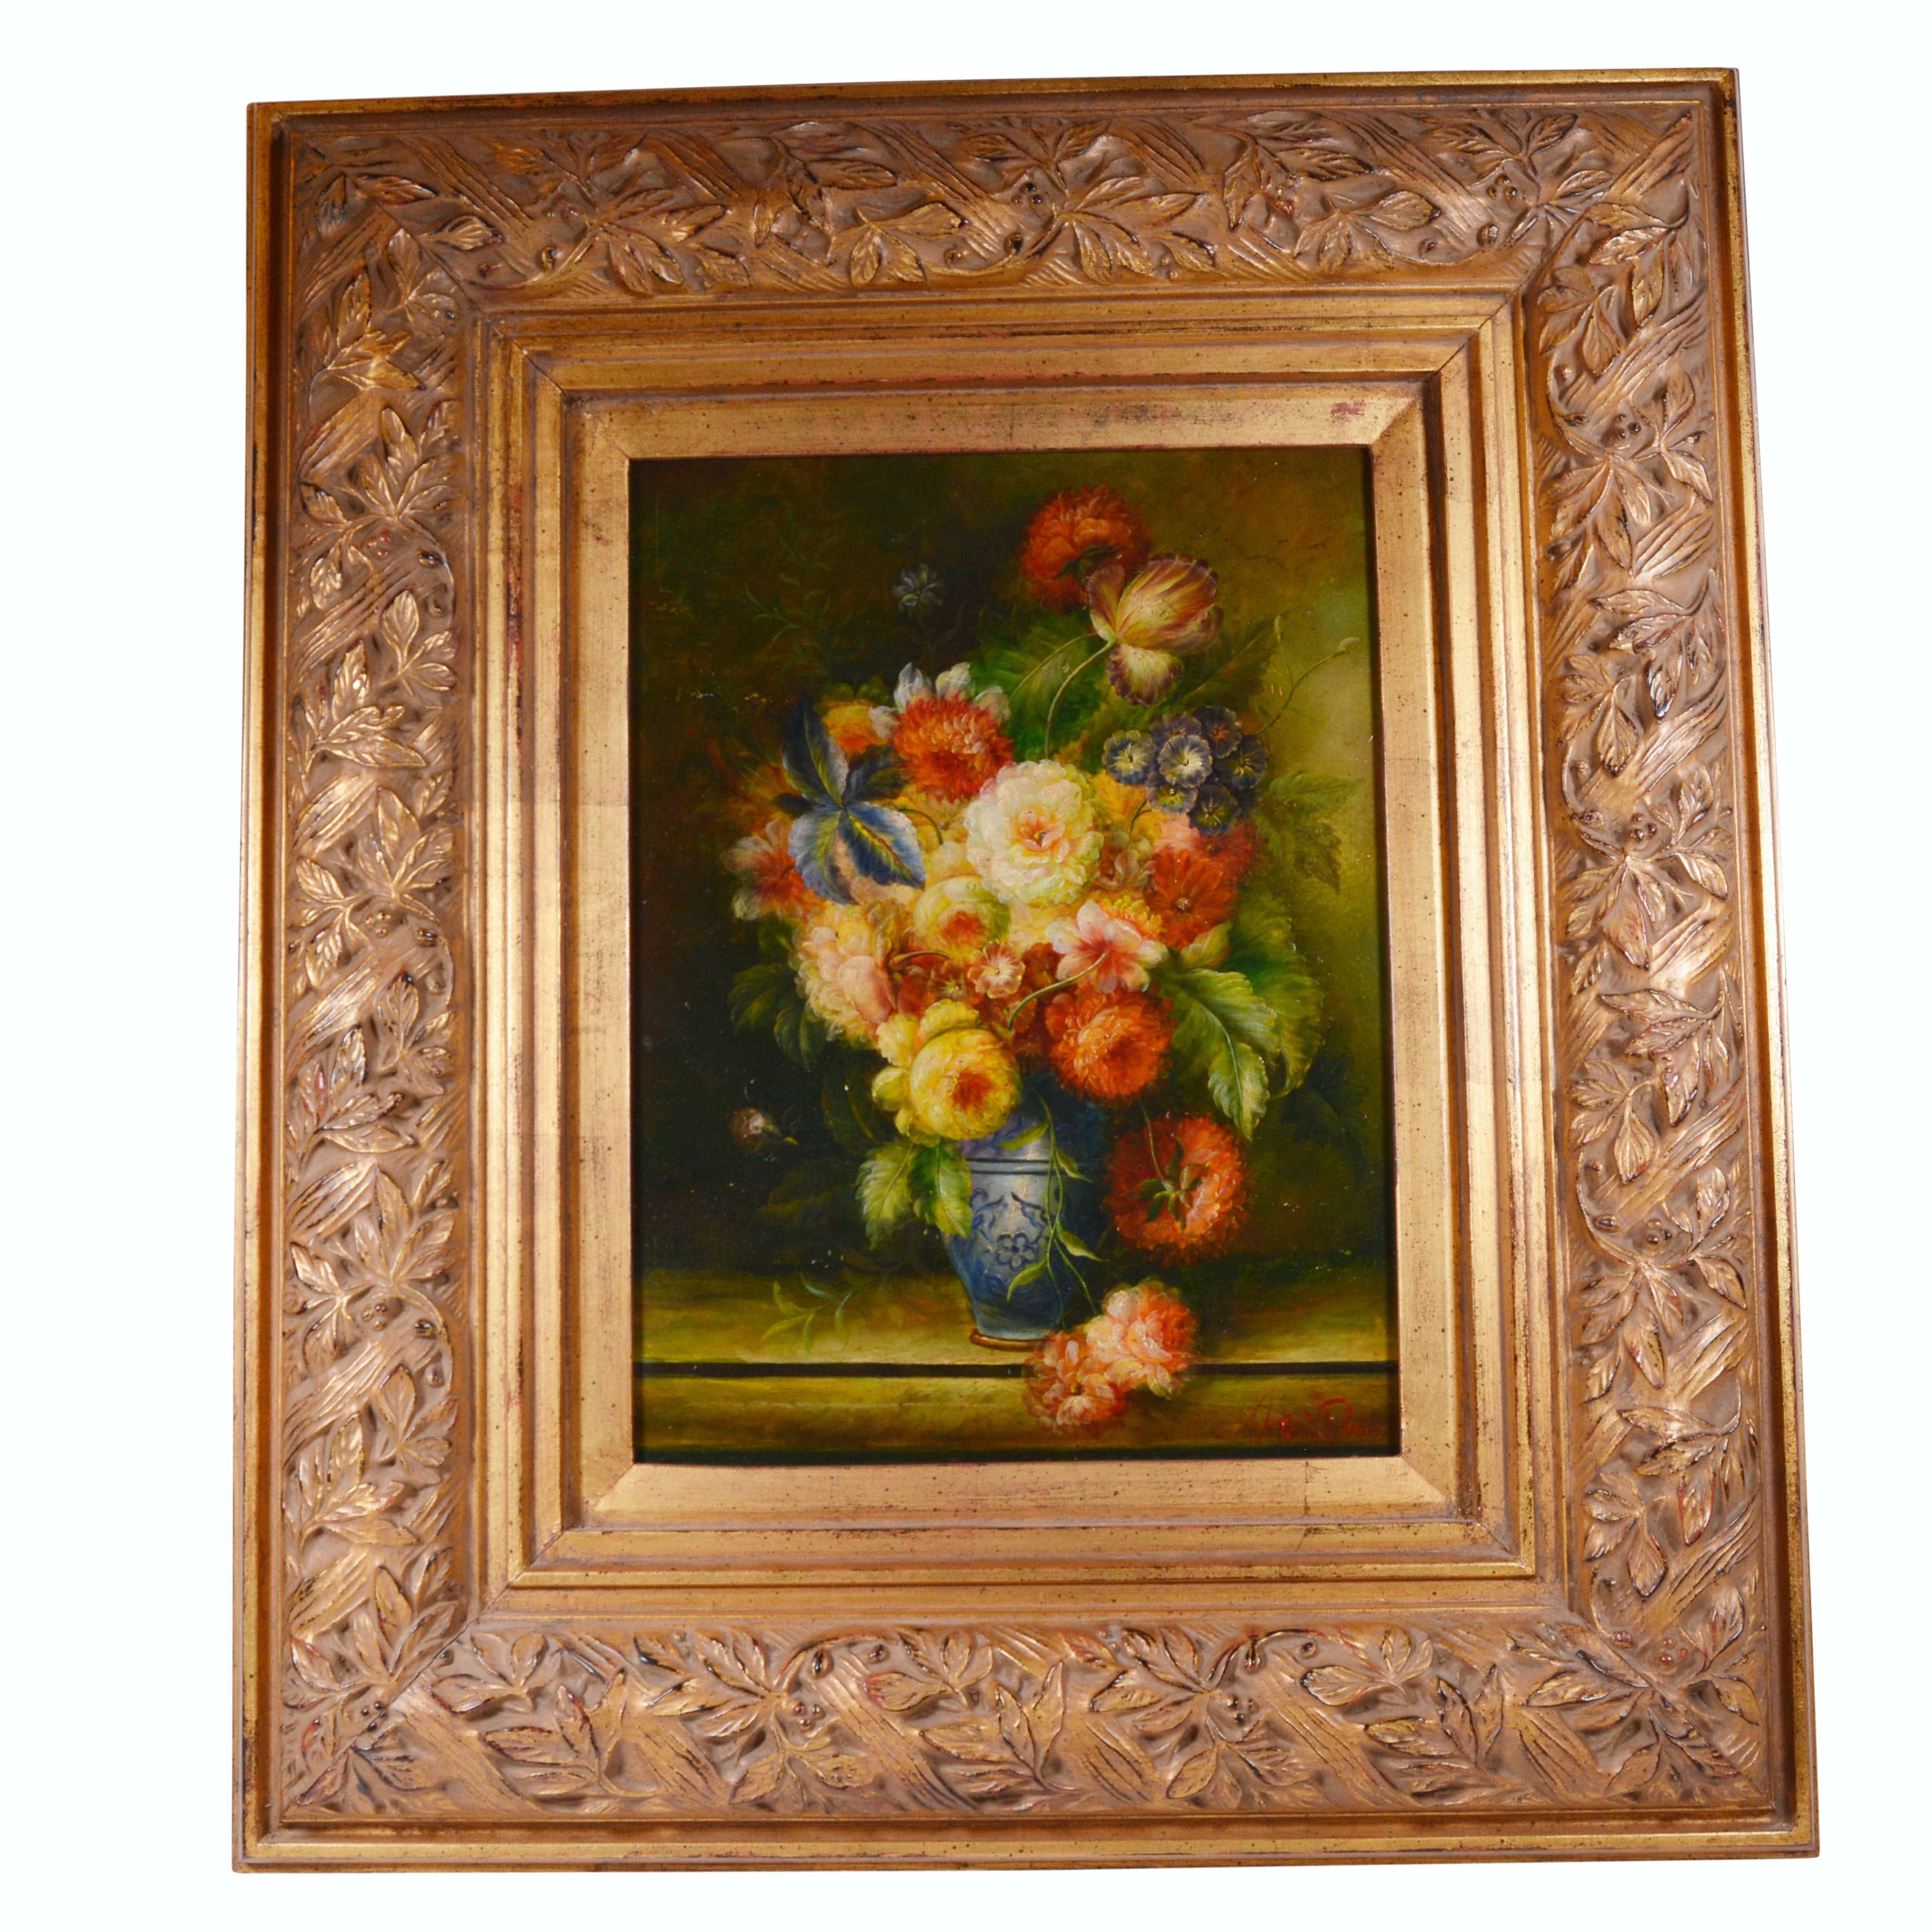 Antonio Dorisi Oil Painting of Floral Still Life